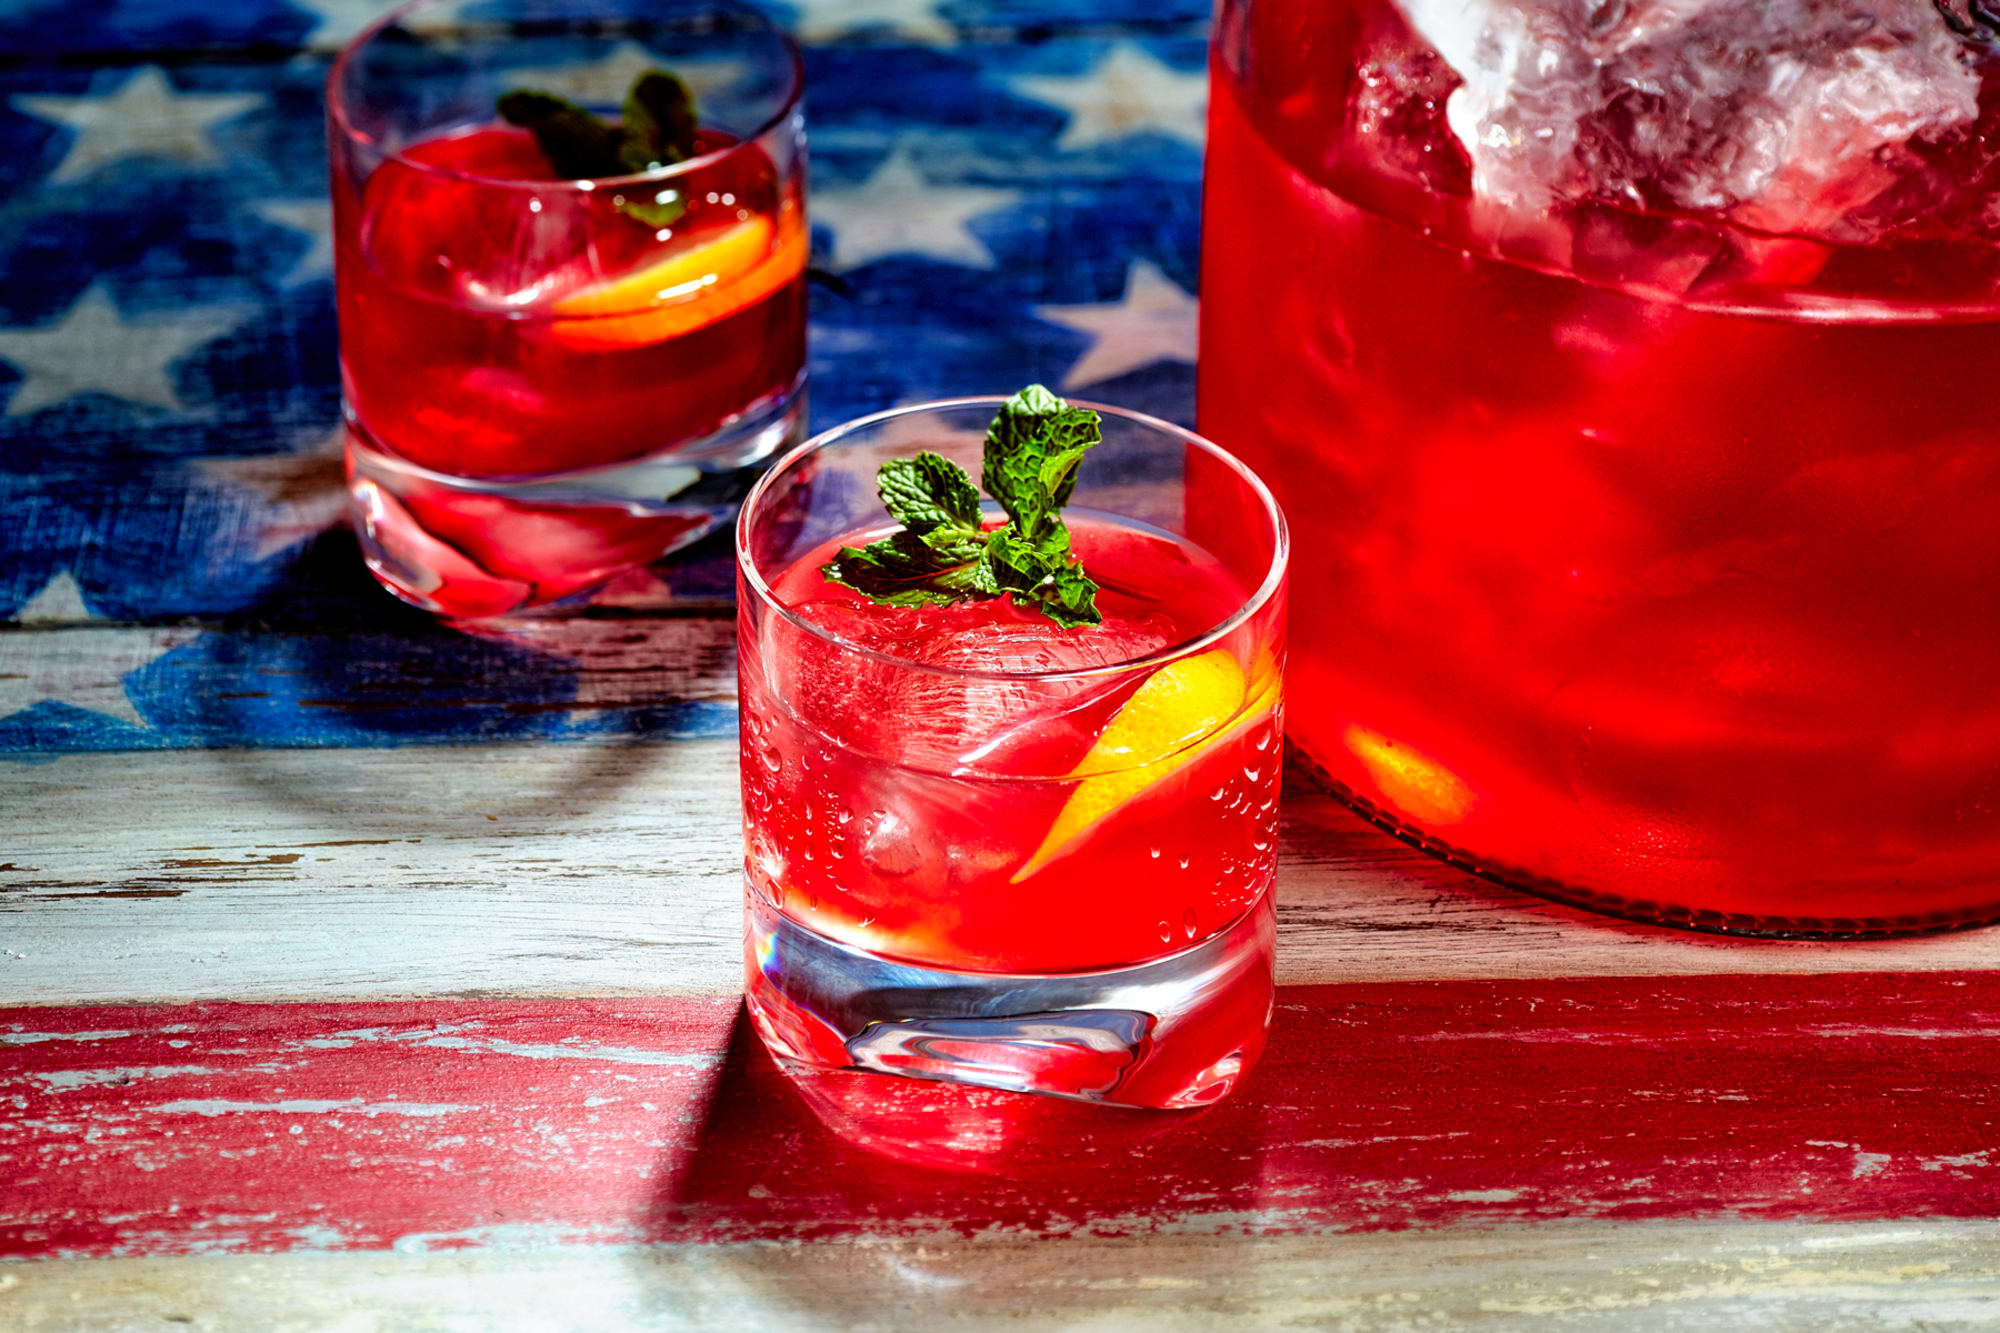 Flavor fireworks: Fourth of July cocktails that sparkle and shine